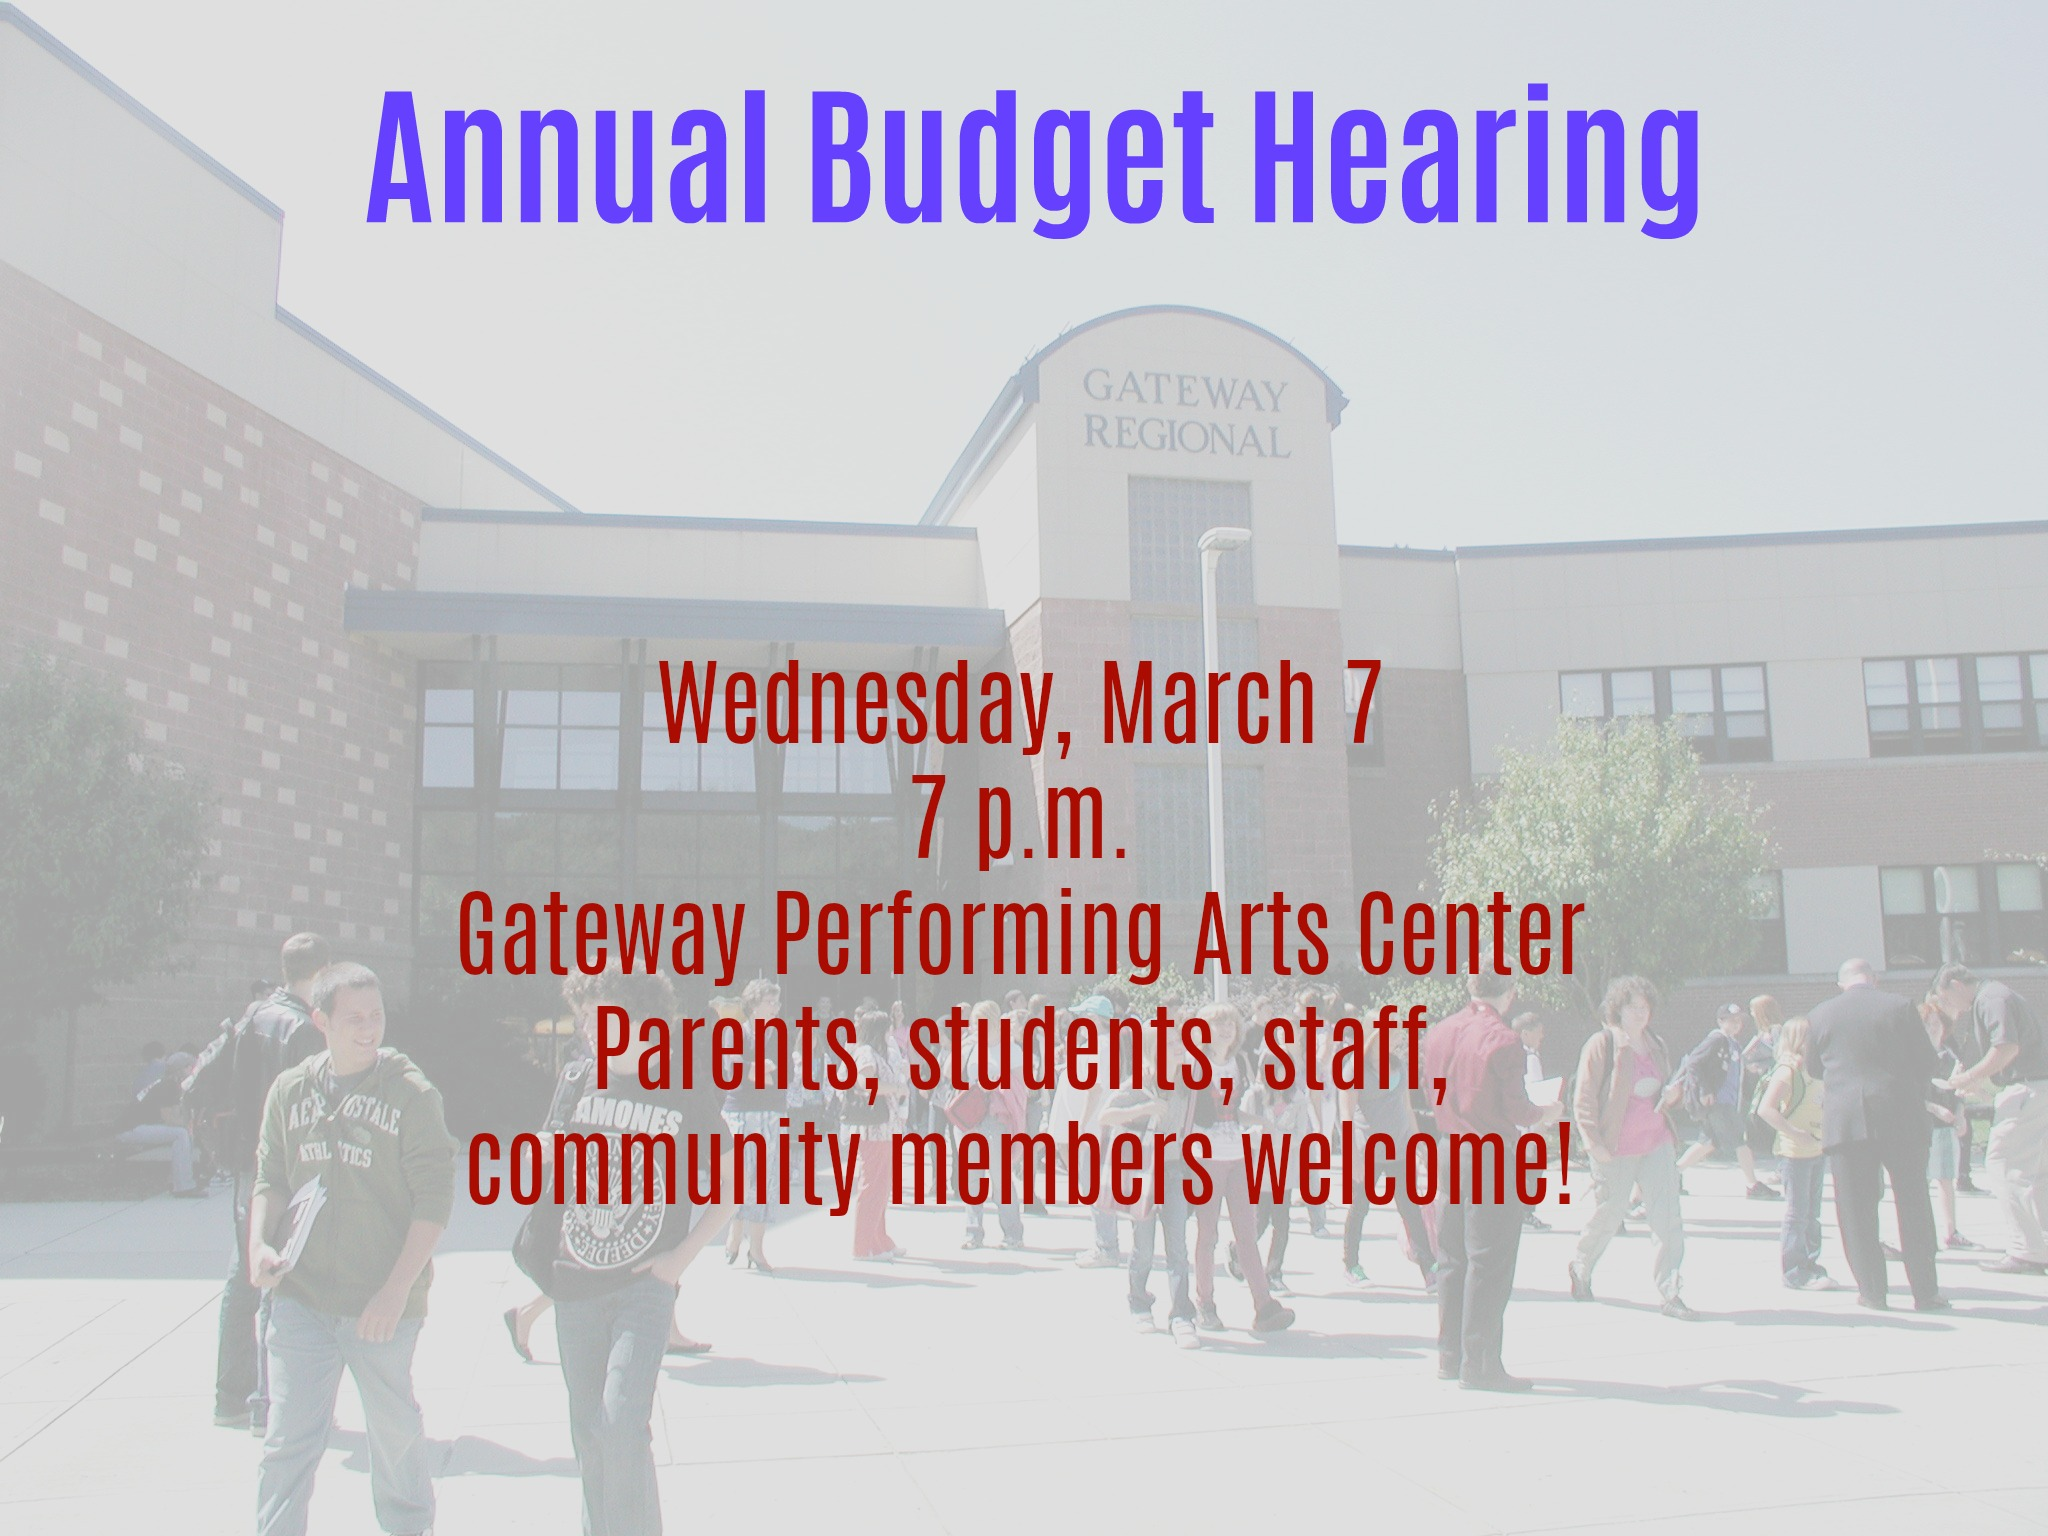 Budget Hearing flyer